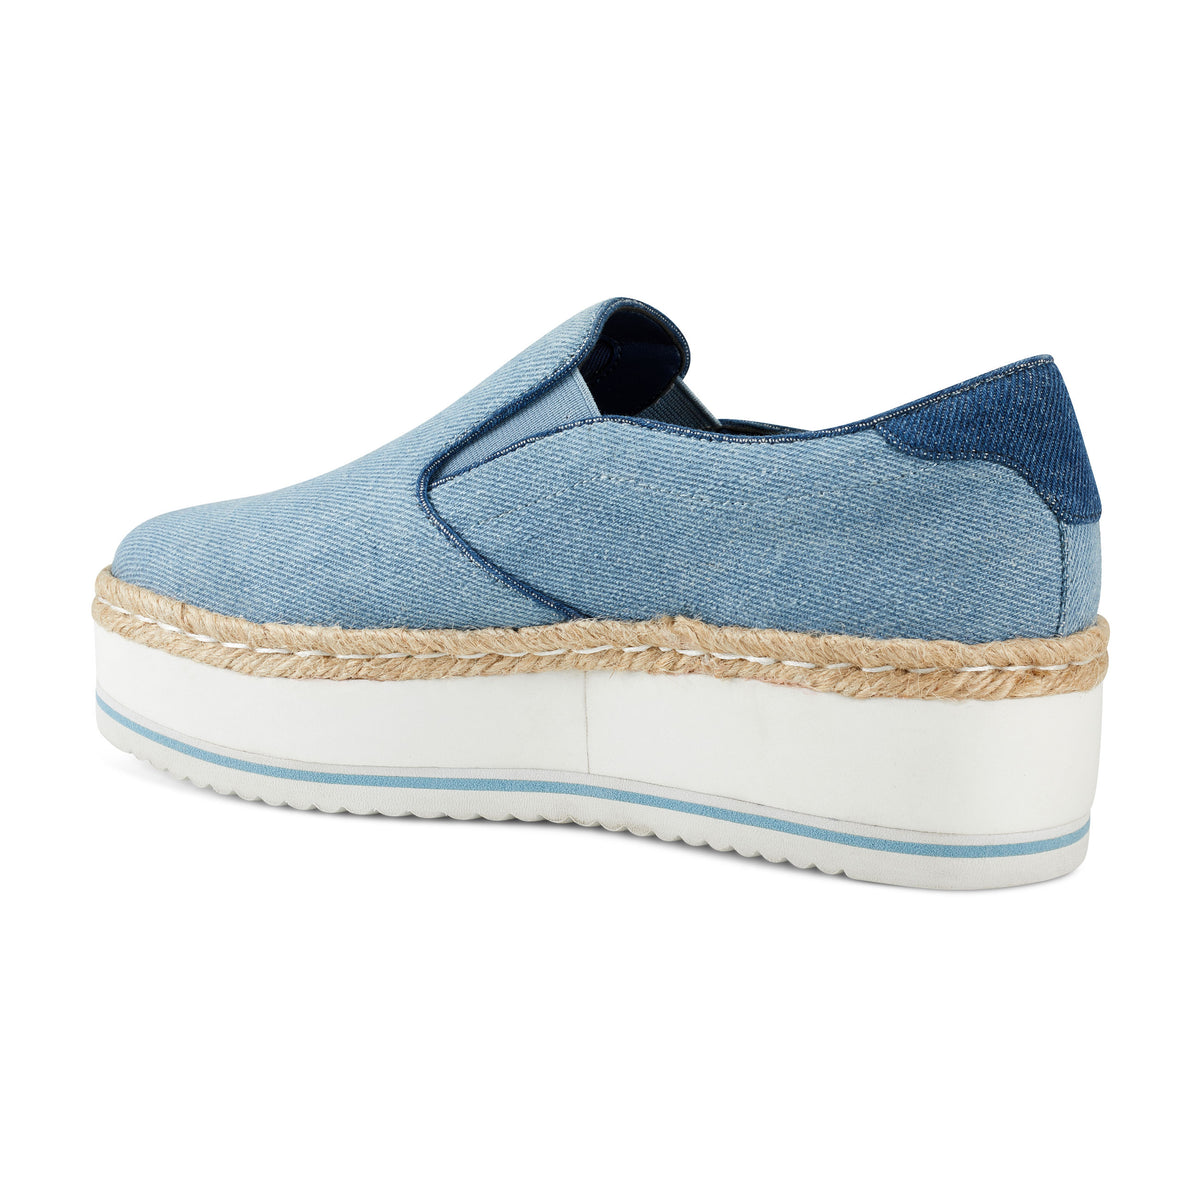 ellisa-platform-sneakers-in-blue-denim-fabric